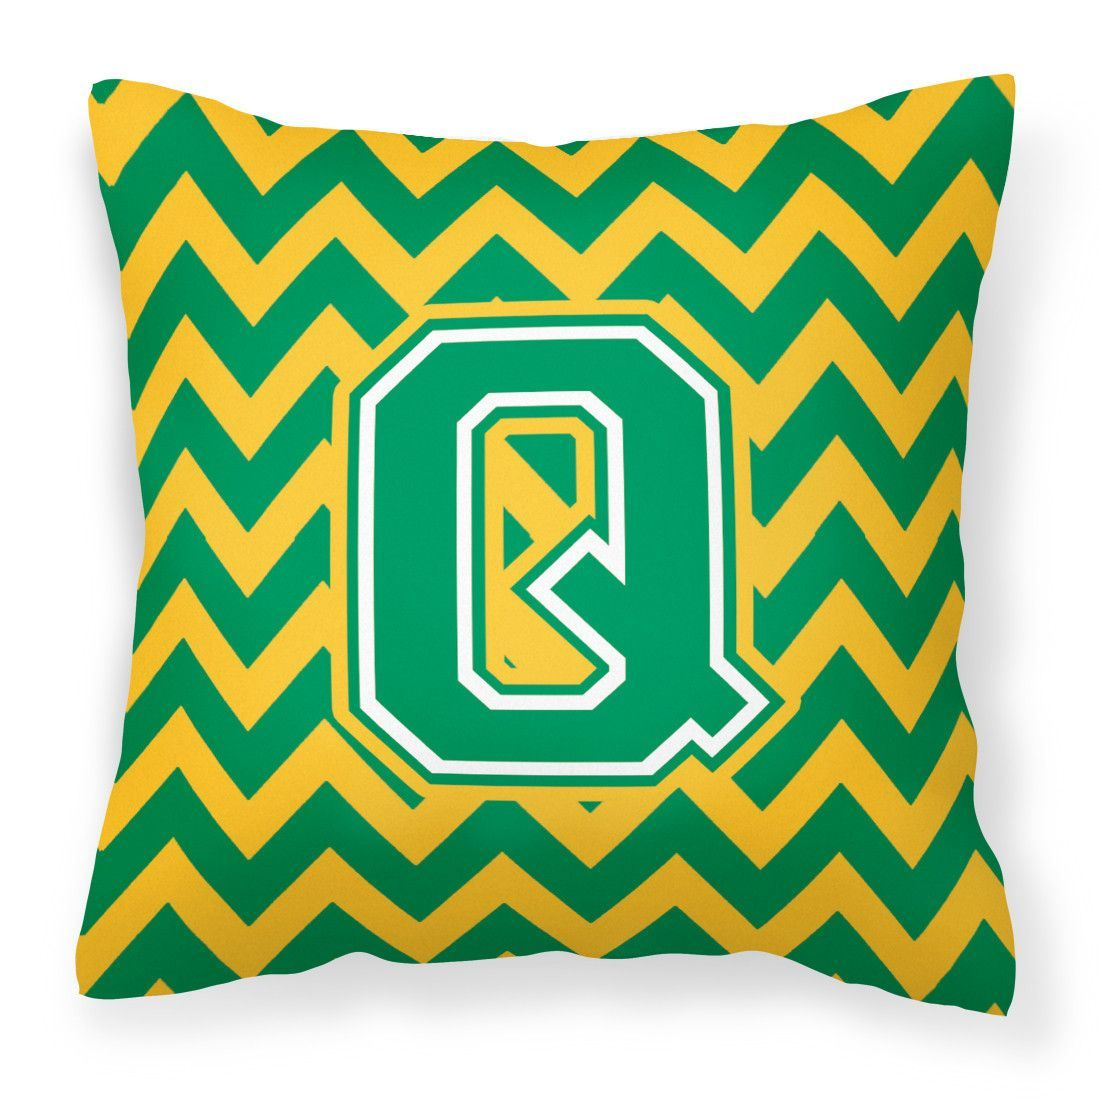 Letter Q Chevron Green and Gold Fabric Decorative Pillow CJ1059-QPW1414